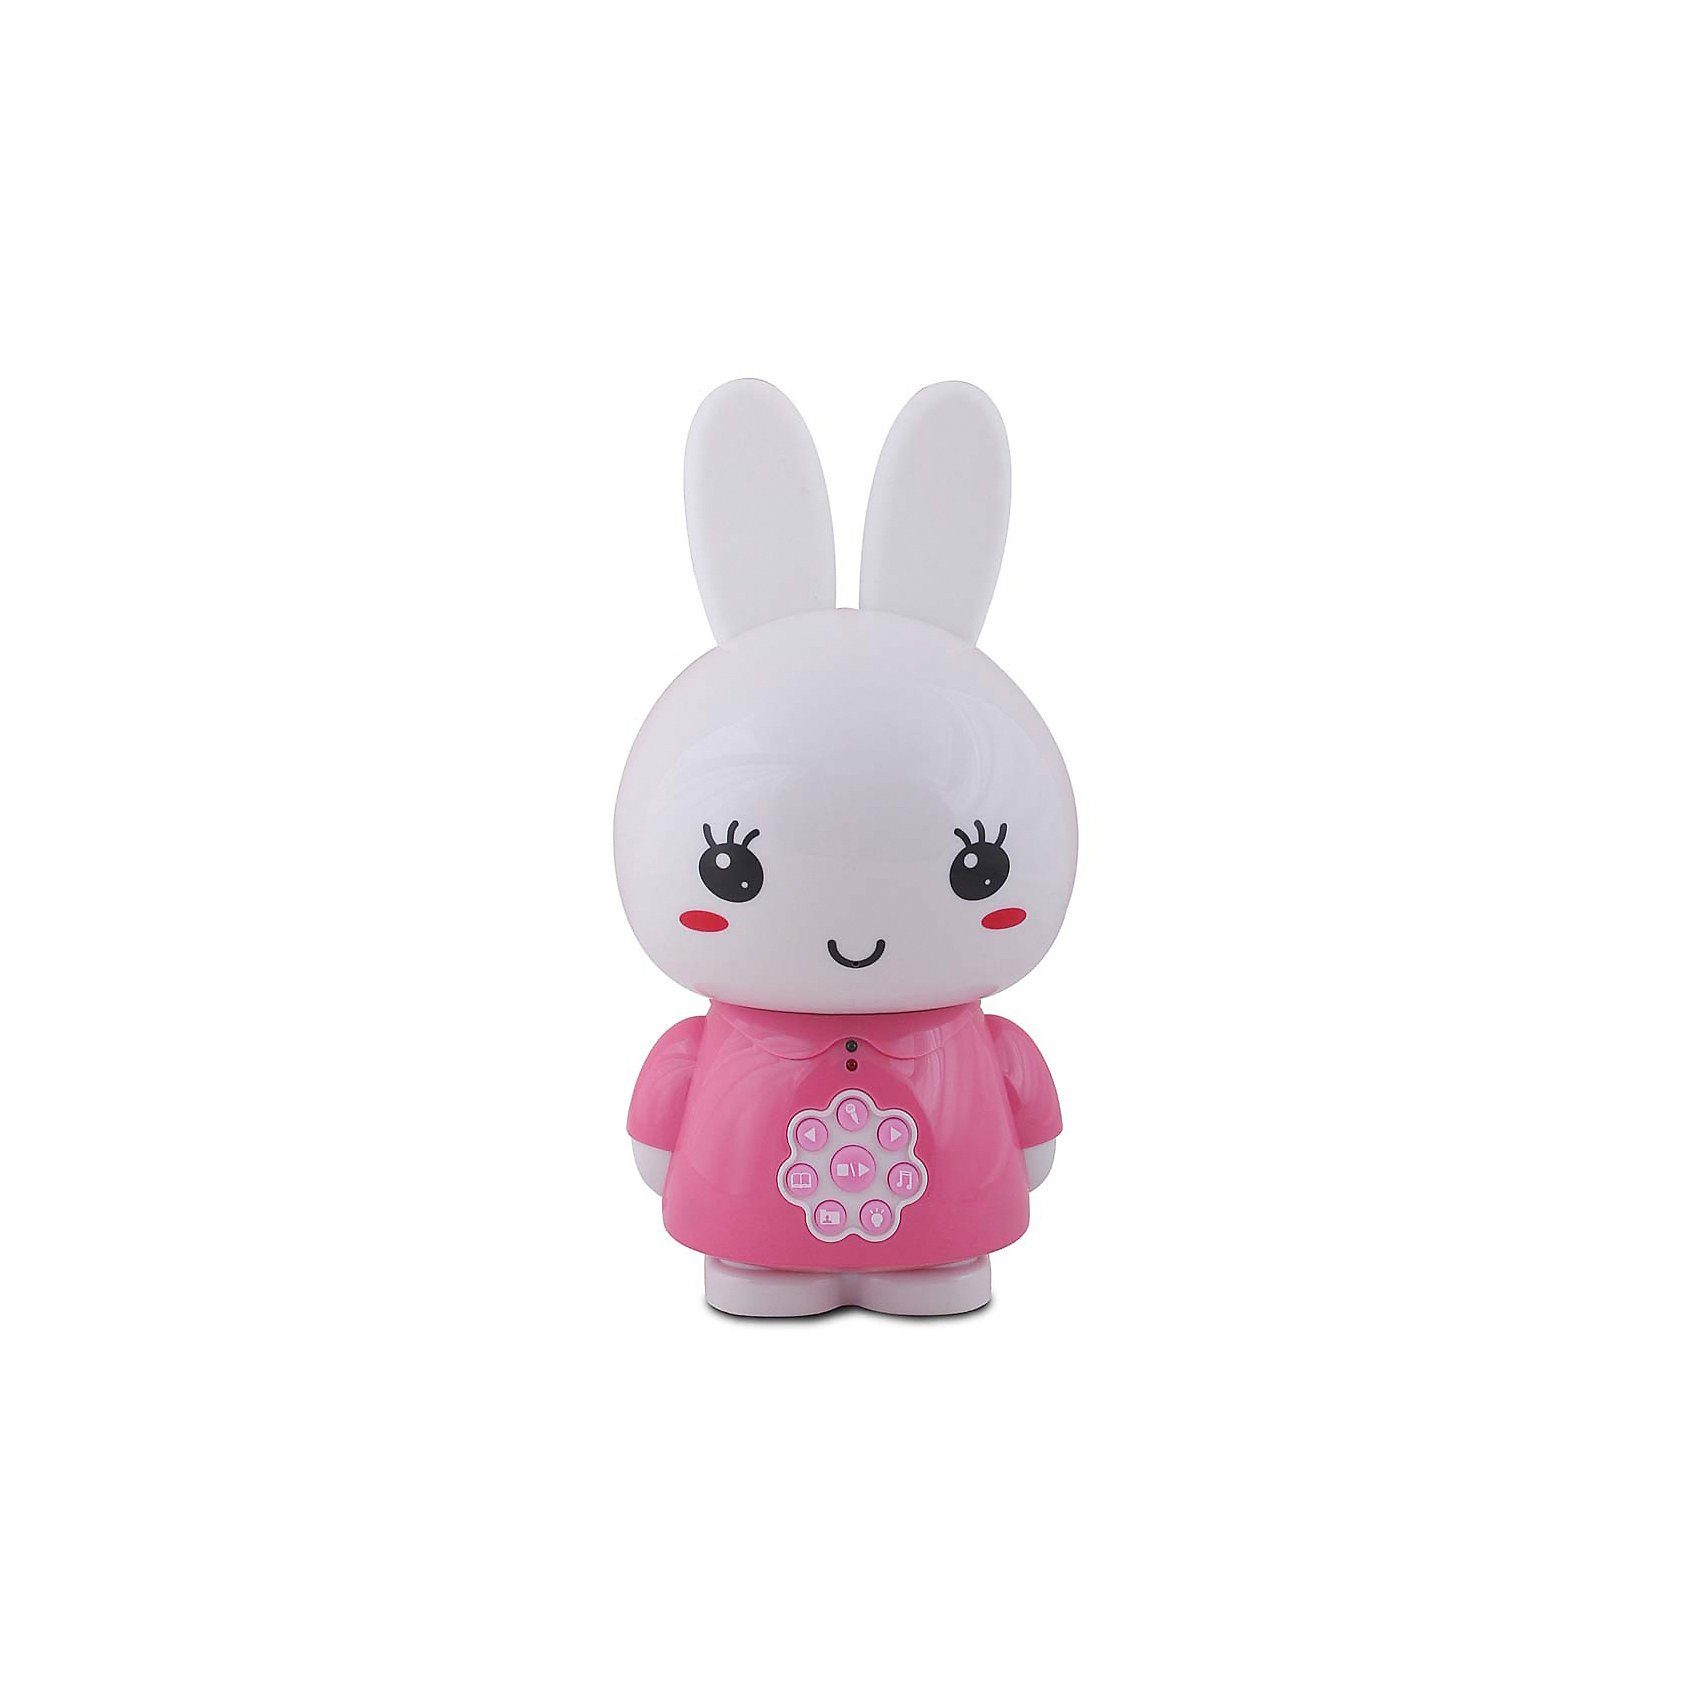 Busch Alilo Honey Bunny Edutainment für Kinder - pink